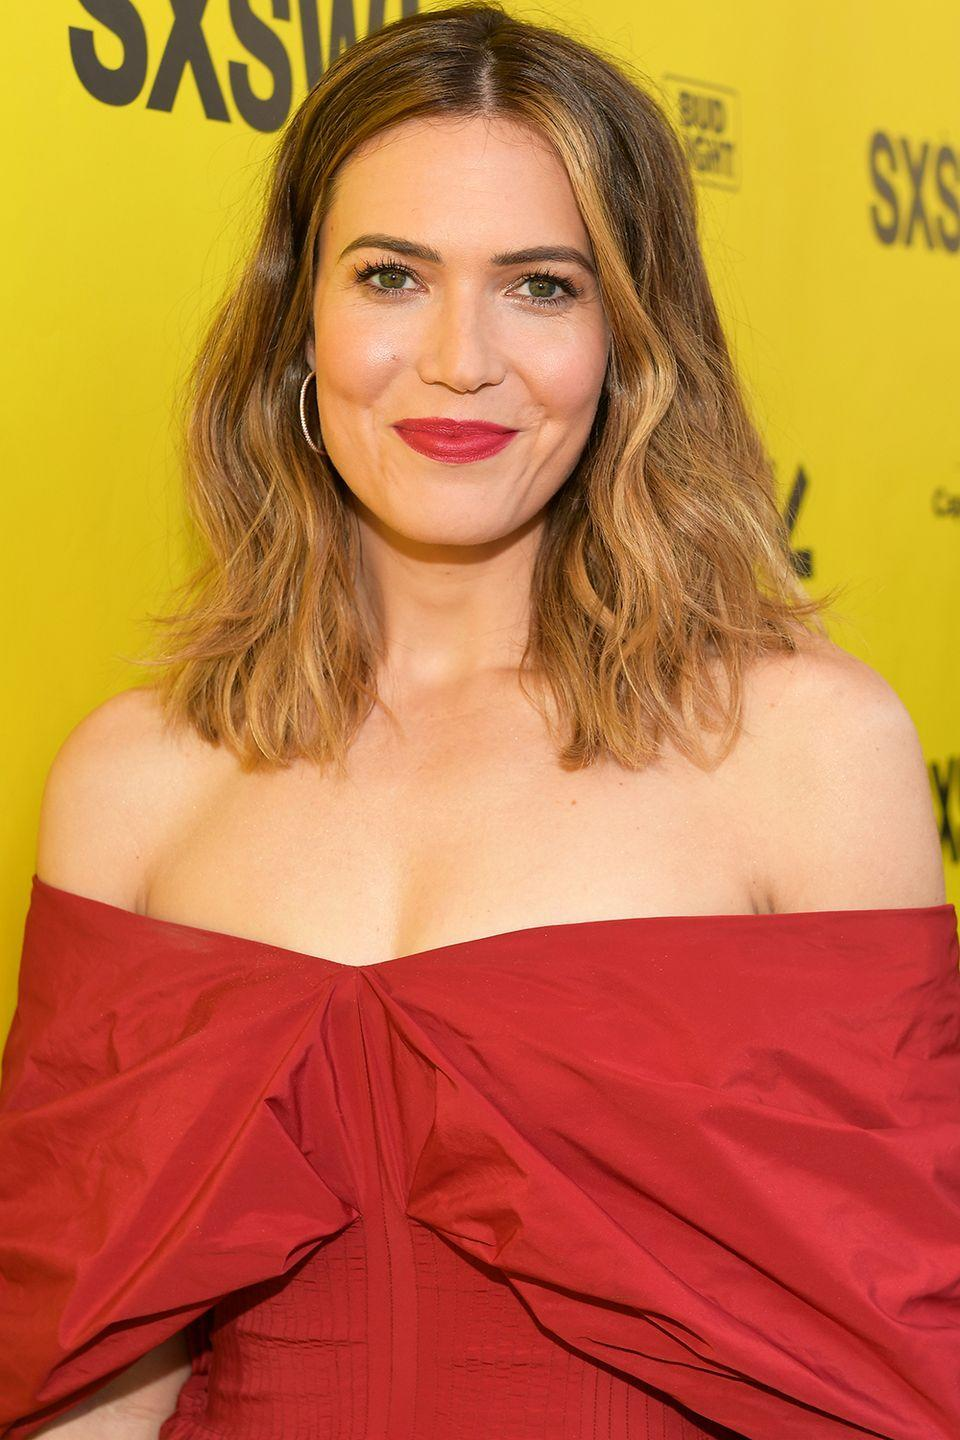 """<p><strong>Born</strong>: Amanda Leigh Moore</p><p>""""I had never really owned my name,"""" Mandy Moore explained in a 2009 interview with <em><a href=""""http://www.cnn.com/2009/SHOWBIZ/Music/06/15/mandy.moore/index.html"""" rel=""""nofollow noopener"""" target=""""_blank"""" data-ylk=""""slk:CNN"""" class=""""link rapid-noclick-resp"""">CNN</a></em>. """"It was just synonymous with my parents being mad at me."""" And can you blame her for wanting to be Mandy Moore? It has a ring to it.</p>"""